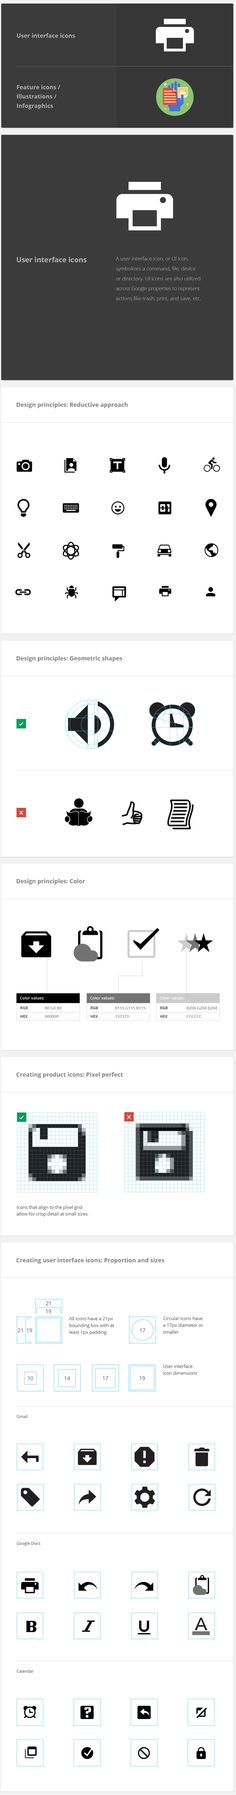 119 best icon images on Pinterest Icons, Aesthetics and All icon - collection letter example